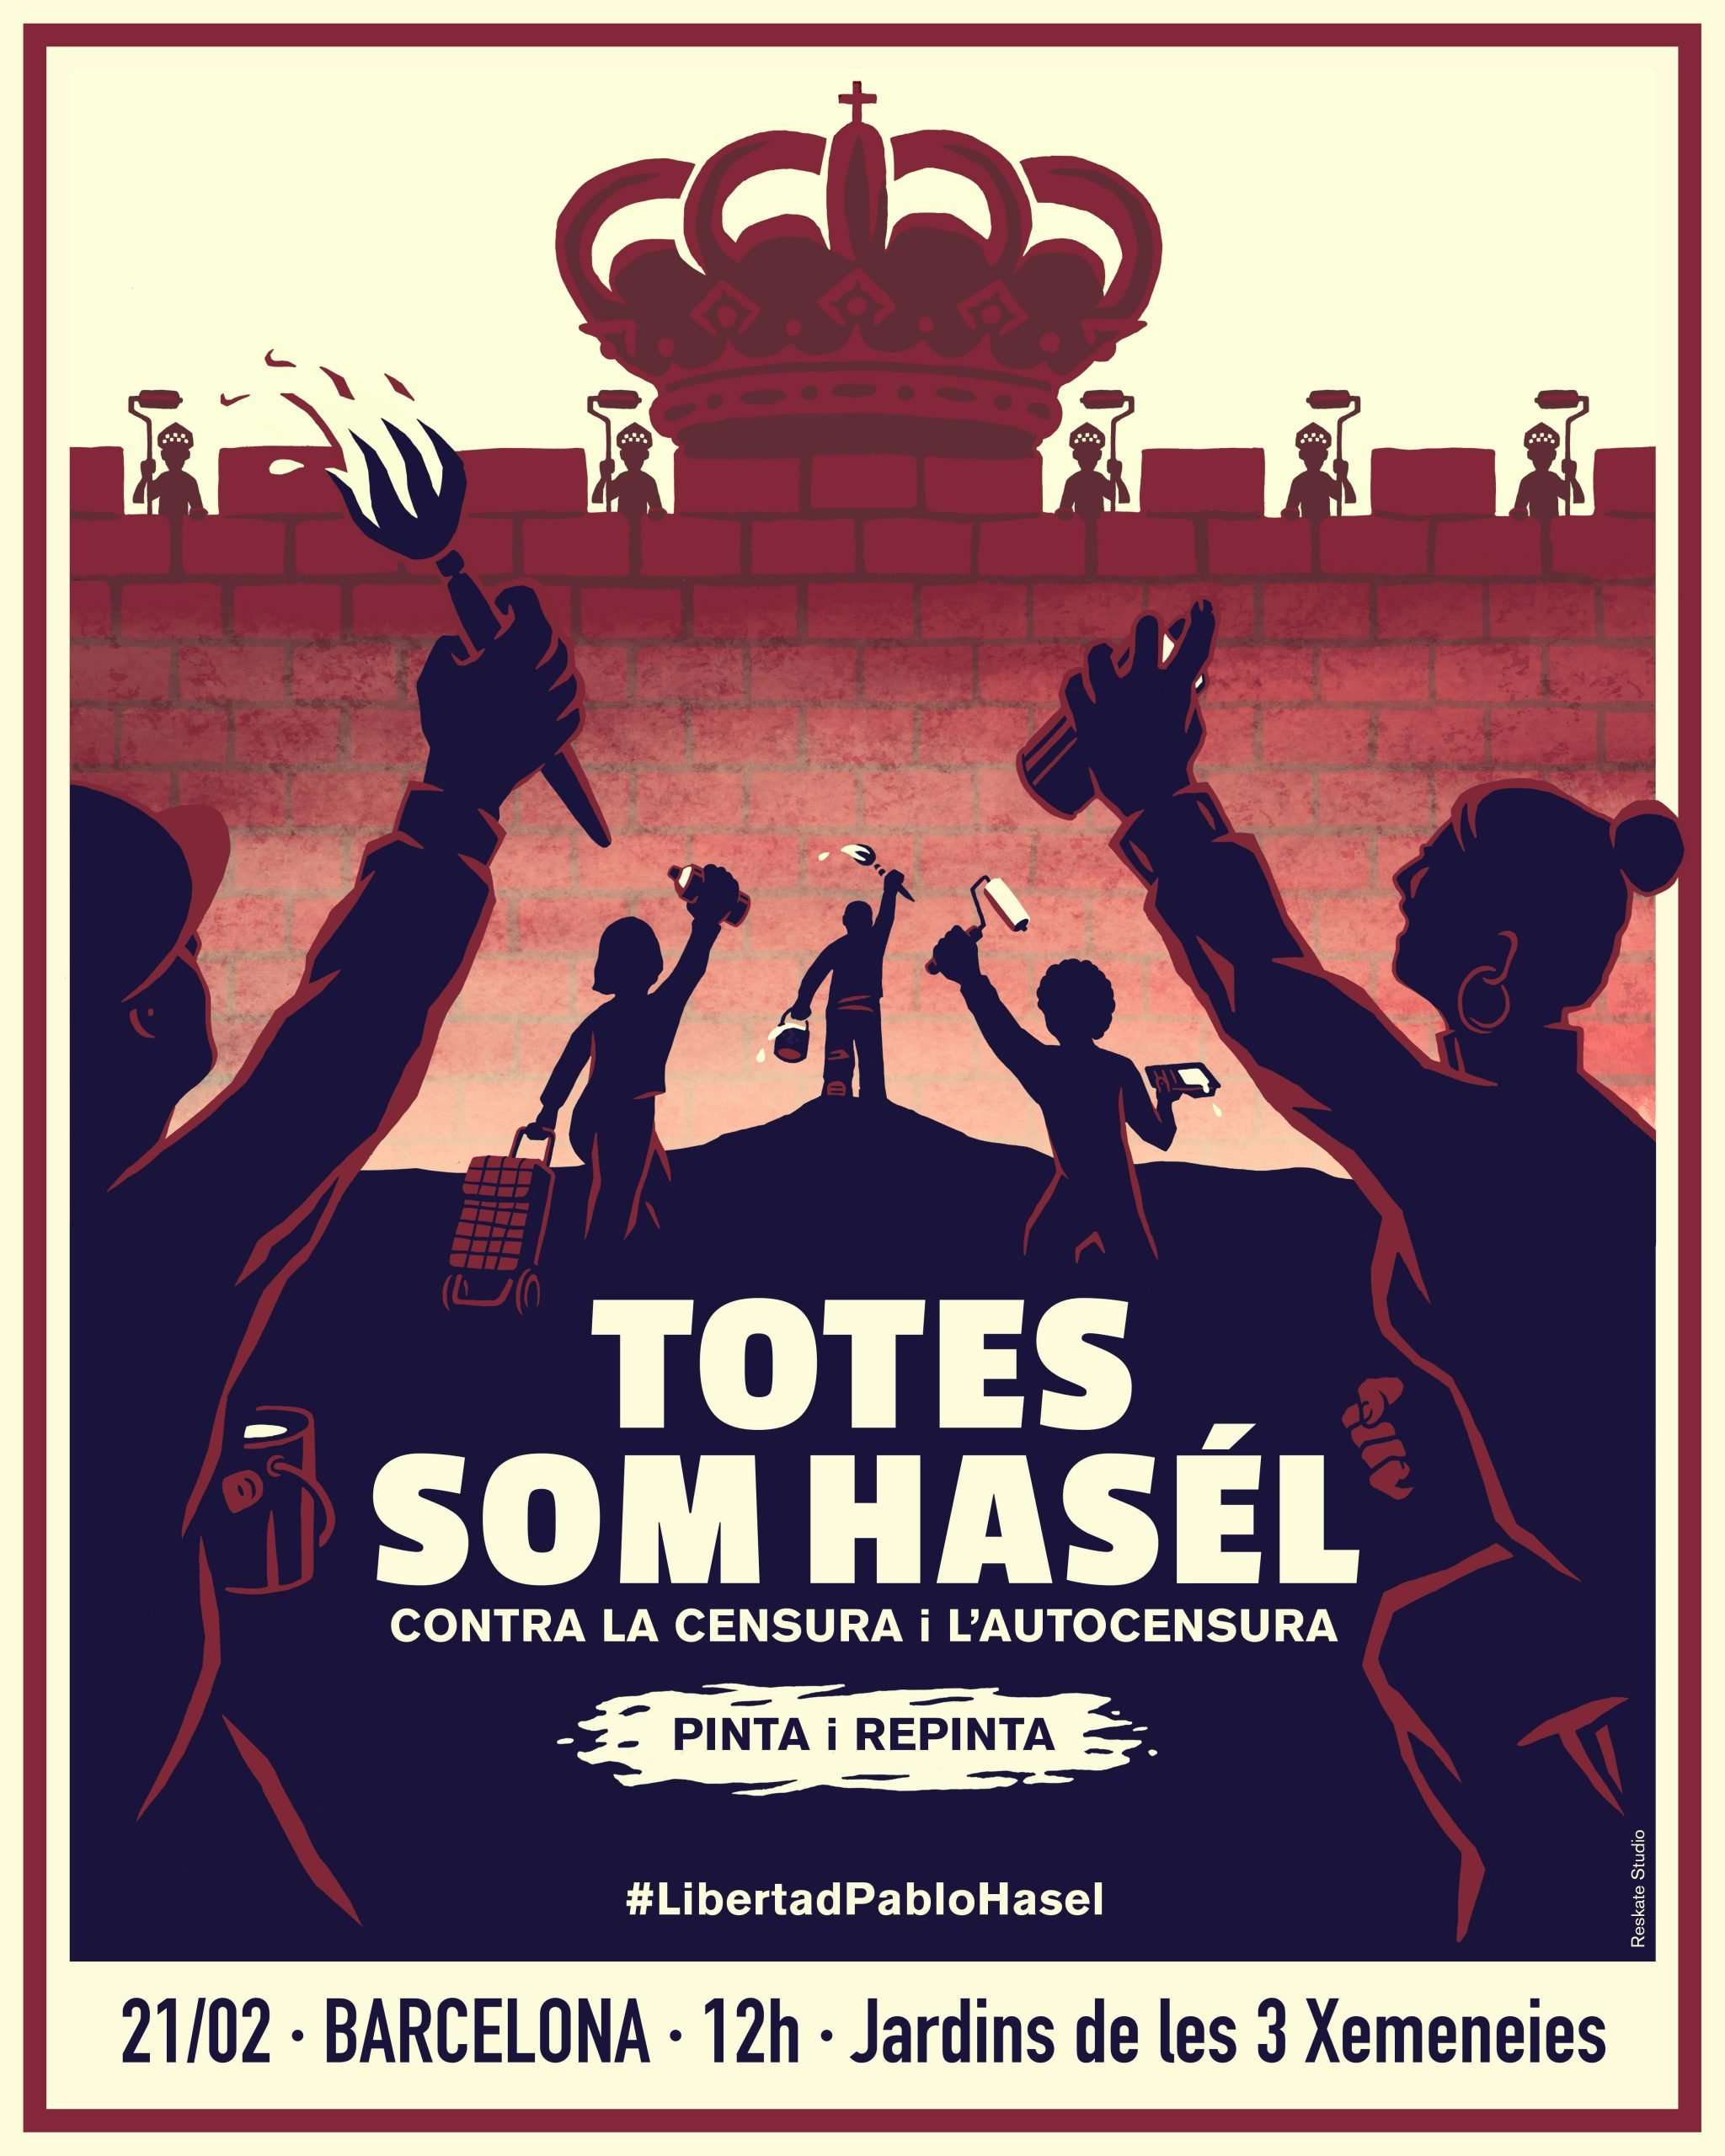 Artistic Protest pablo hasel